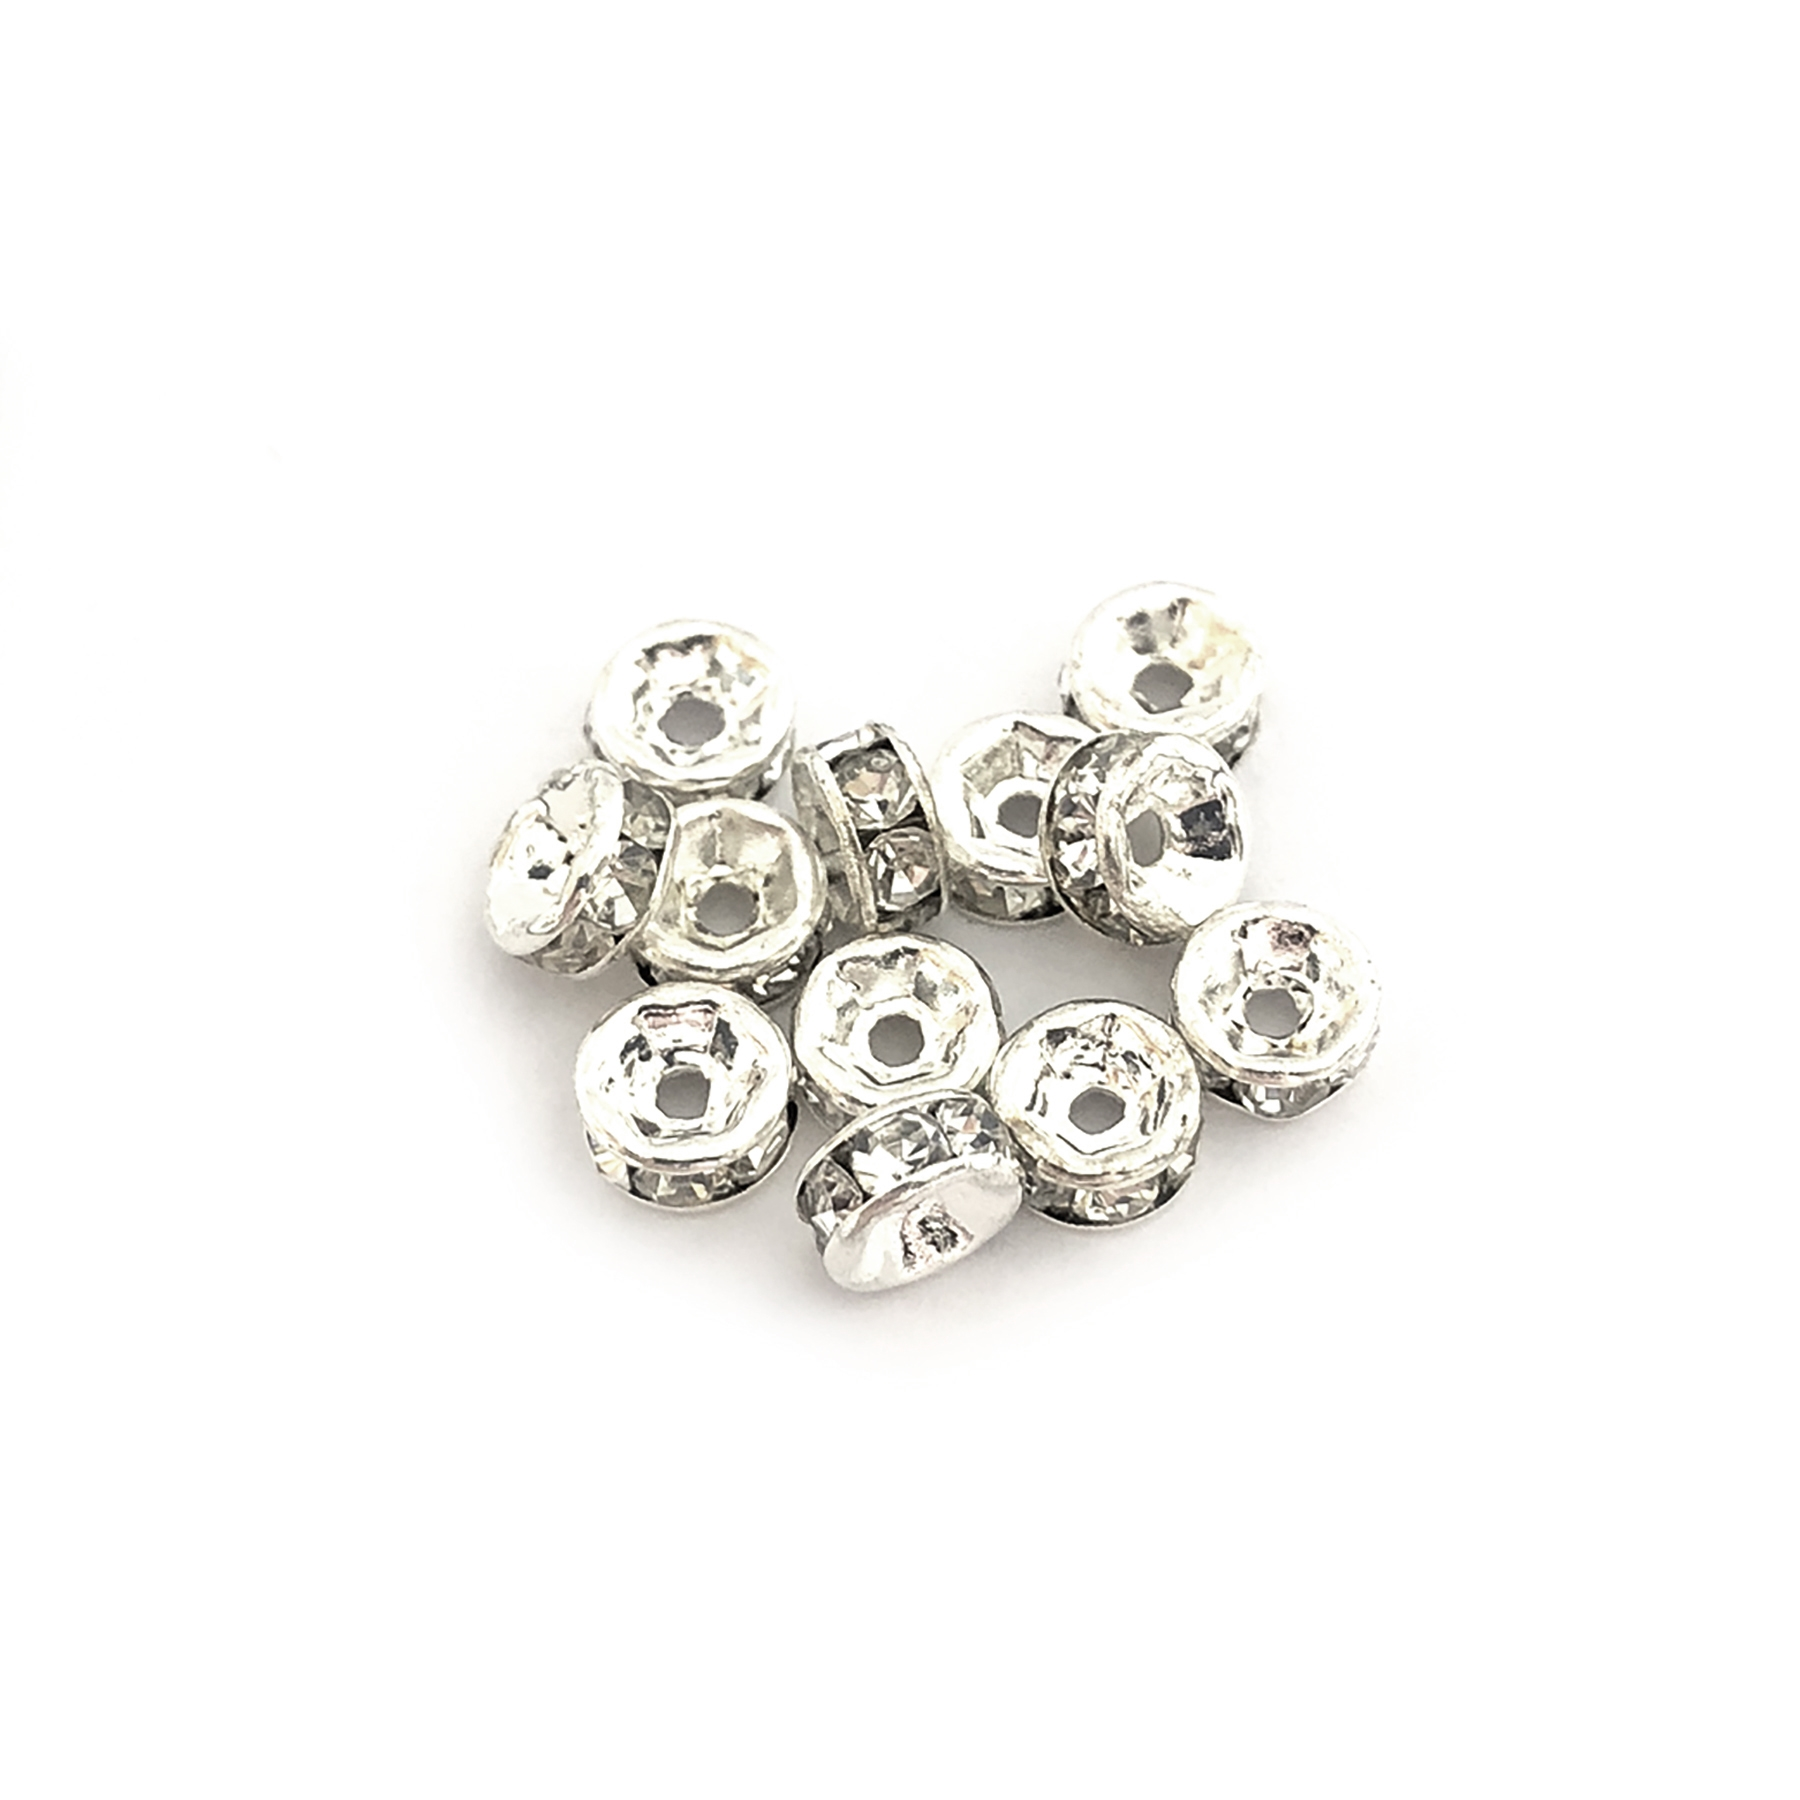 rhinestone rhondelles, crystal, silver, 5mm, 05246, vintage jewelry supplies, jewelry making supplies, Bsue Boutiques, US made, crystal rhinestones,